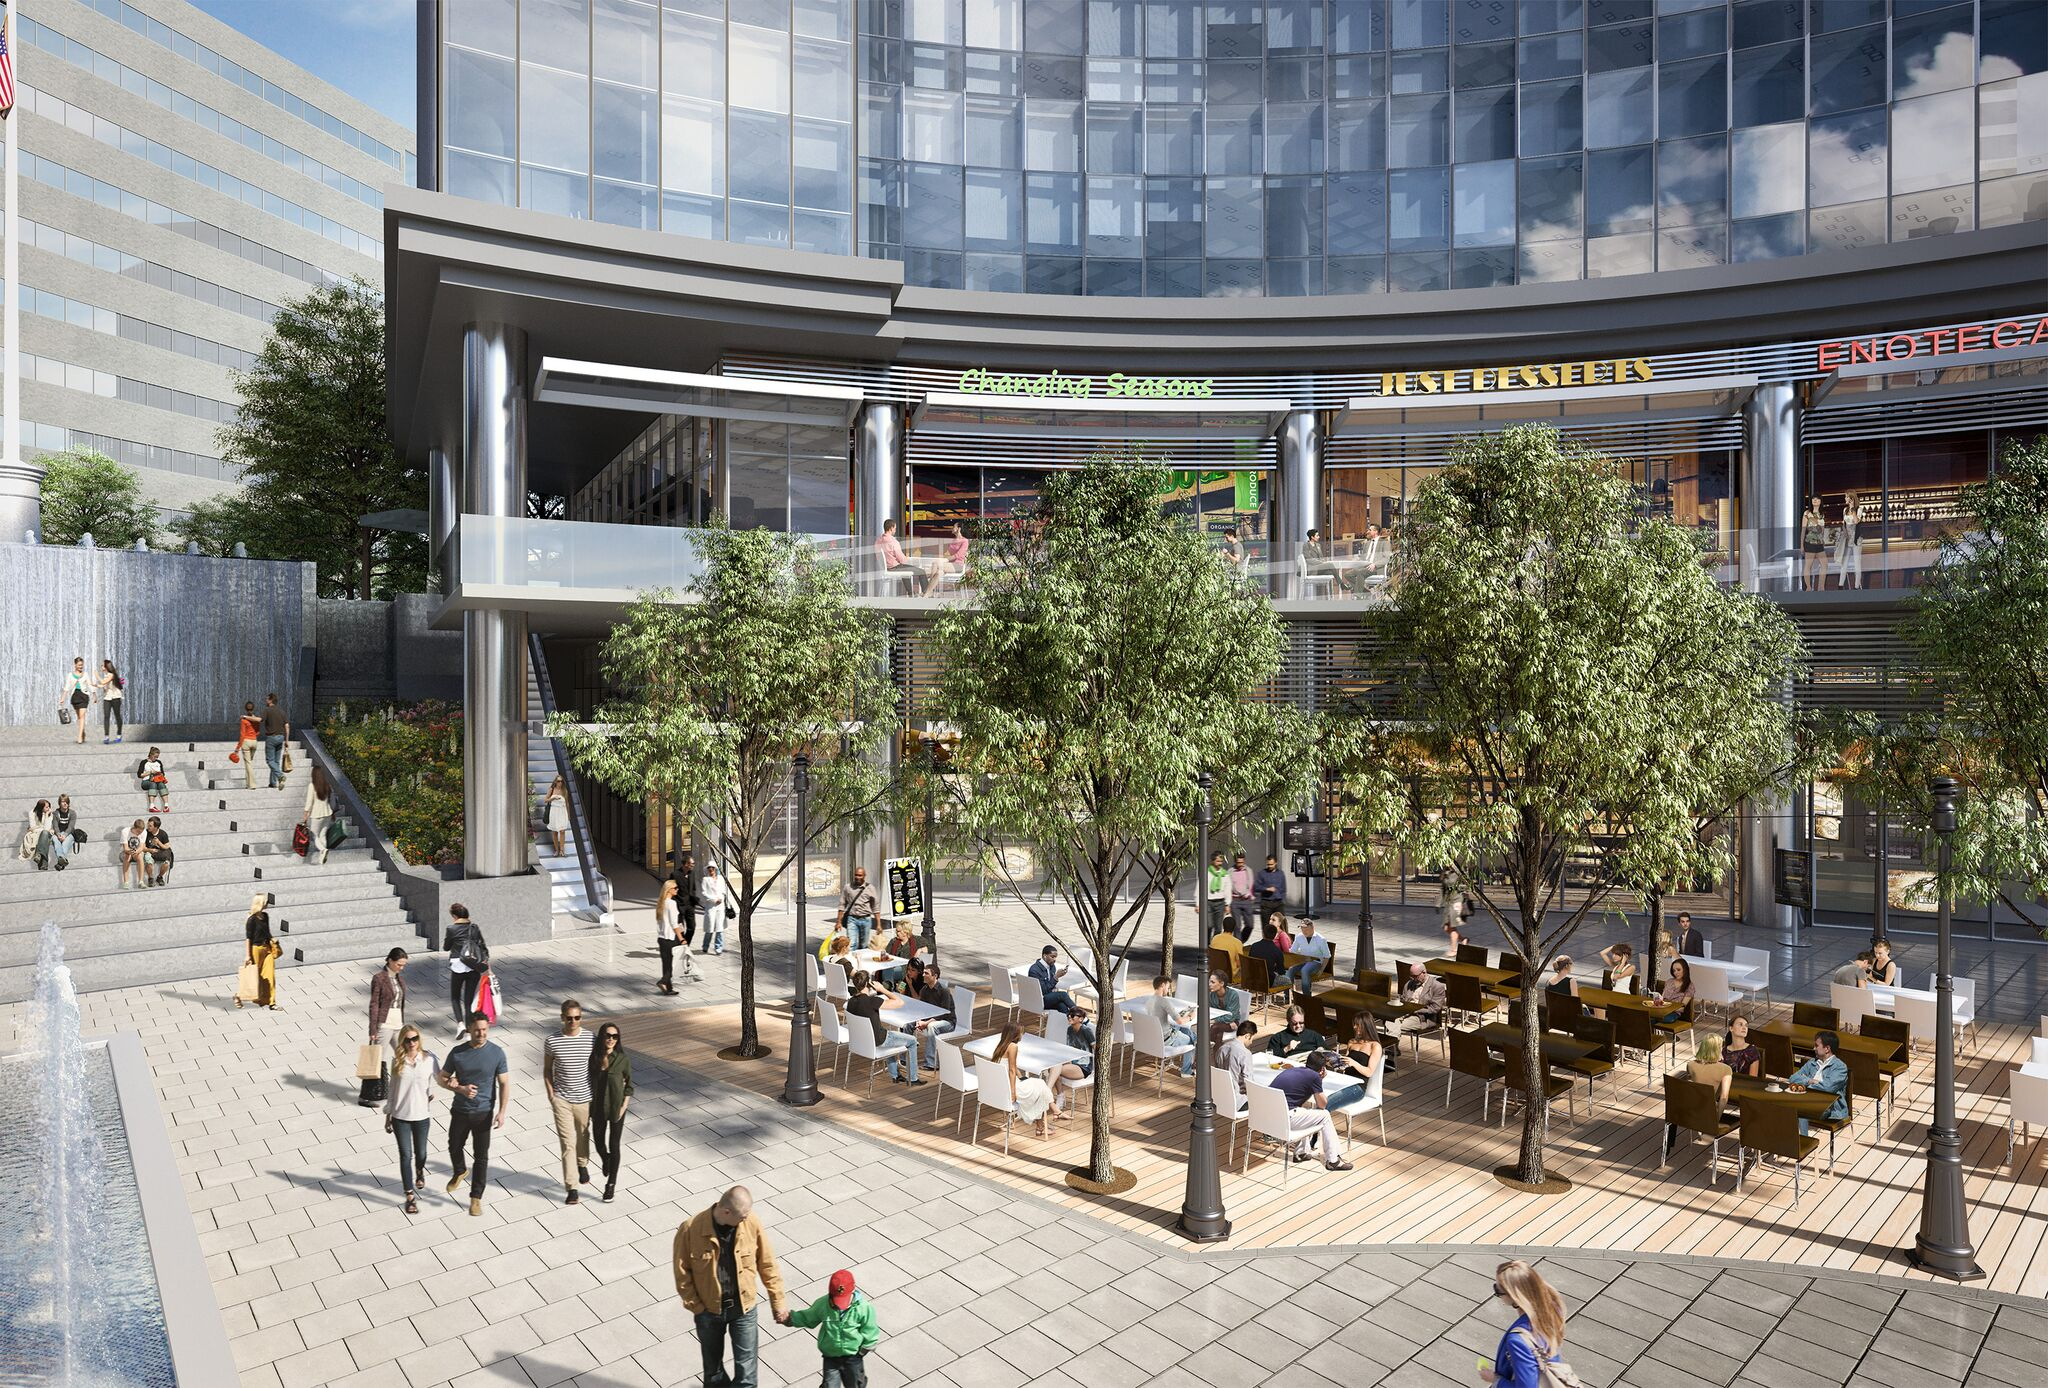 a rendering of the proposed mixed-use community retail space